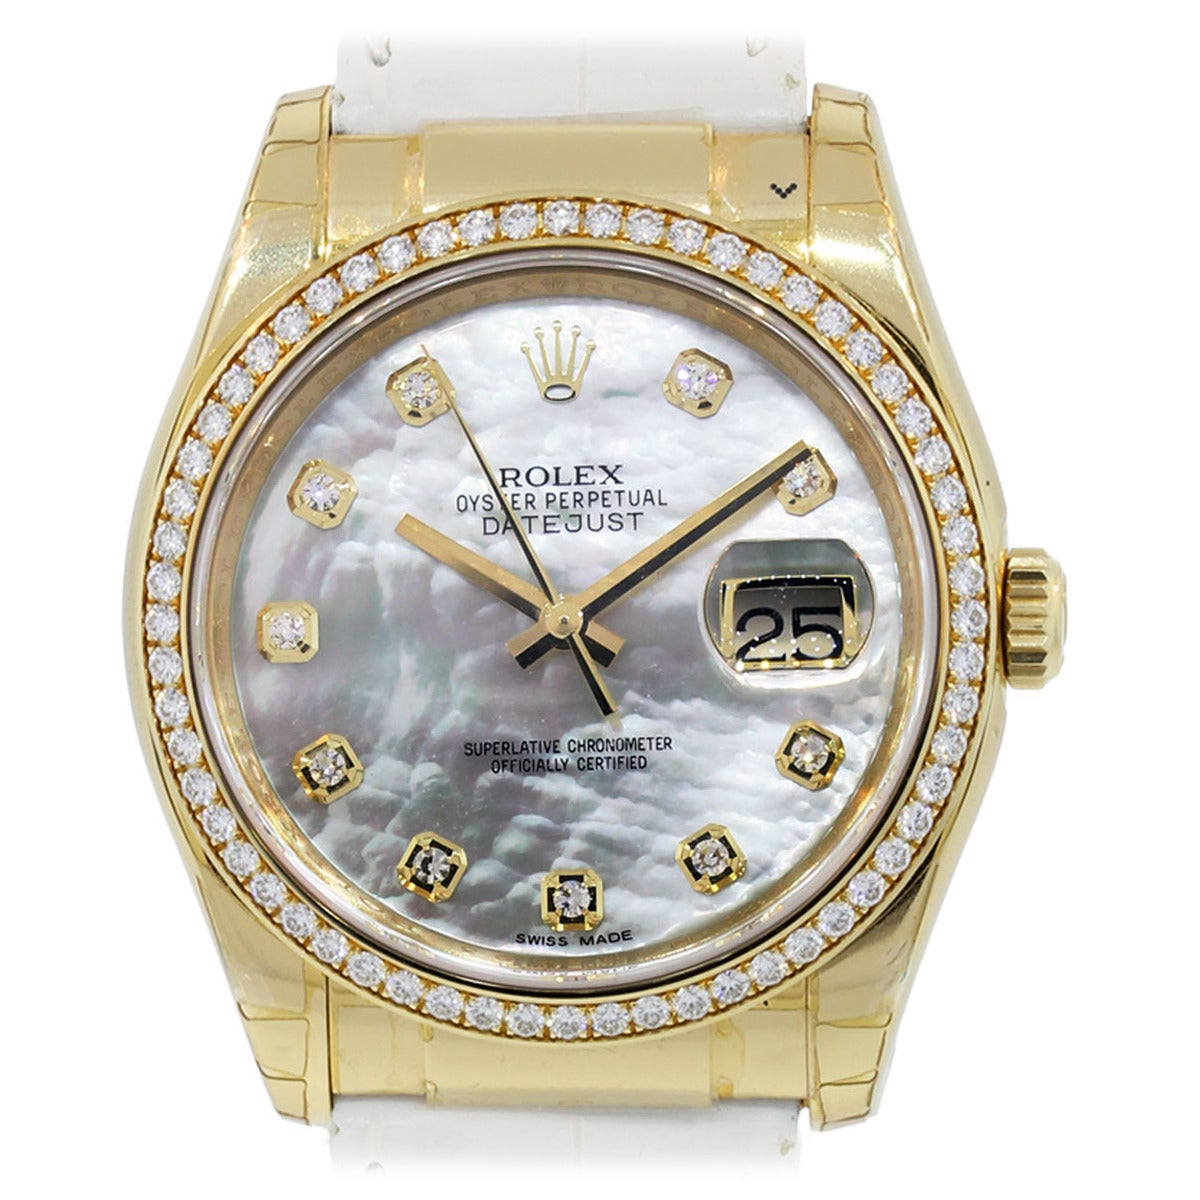 Rolex Yellow Gold Datejust Mother of Pearl Diamond Dial Wristwatch Ref 116188 For Sale